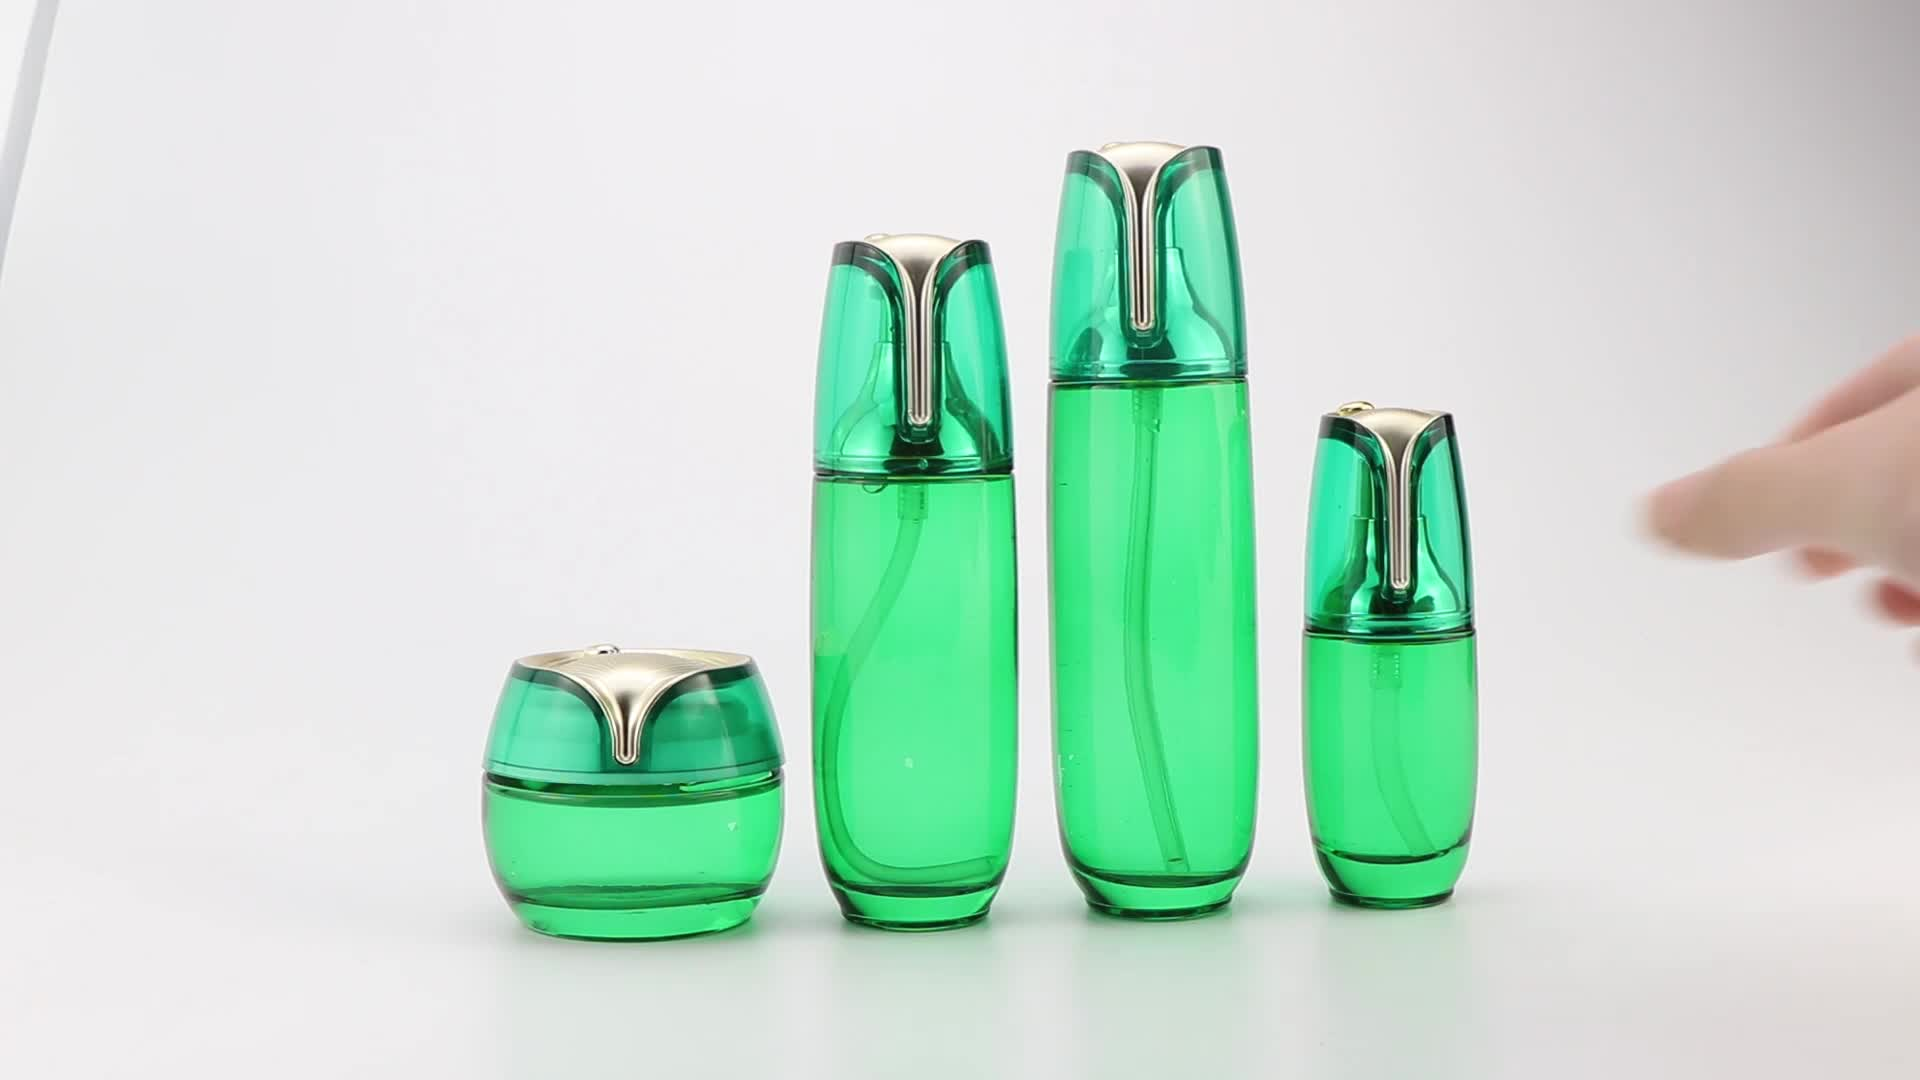 factory price biodegradable skin care packaging green glass cosmetic bottle luxury serum packaging